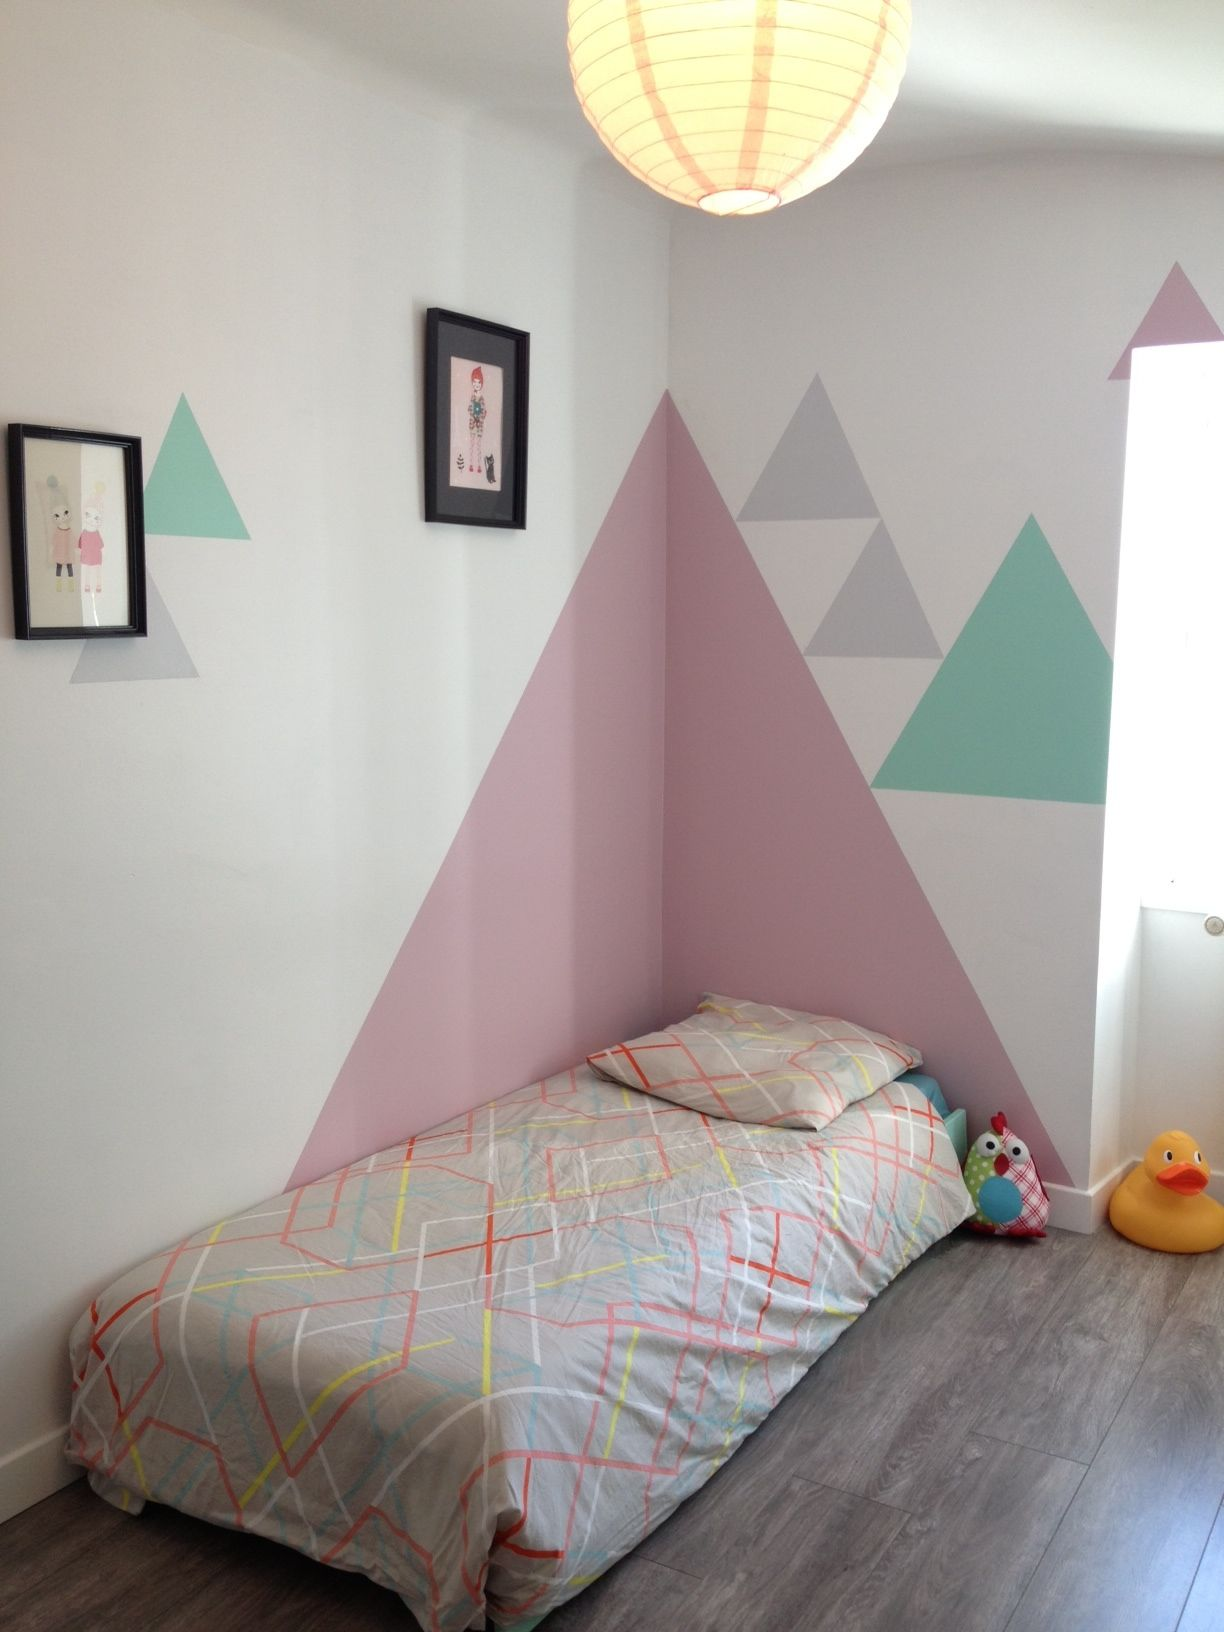 Comment habiller un angle dans une pi ce bedroom for Photo comment ideas